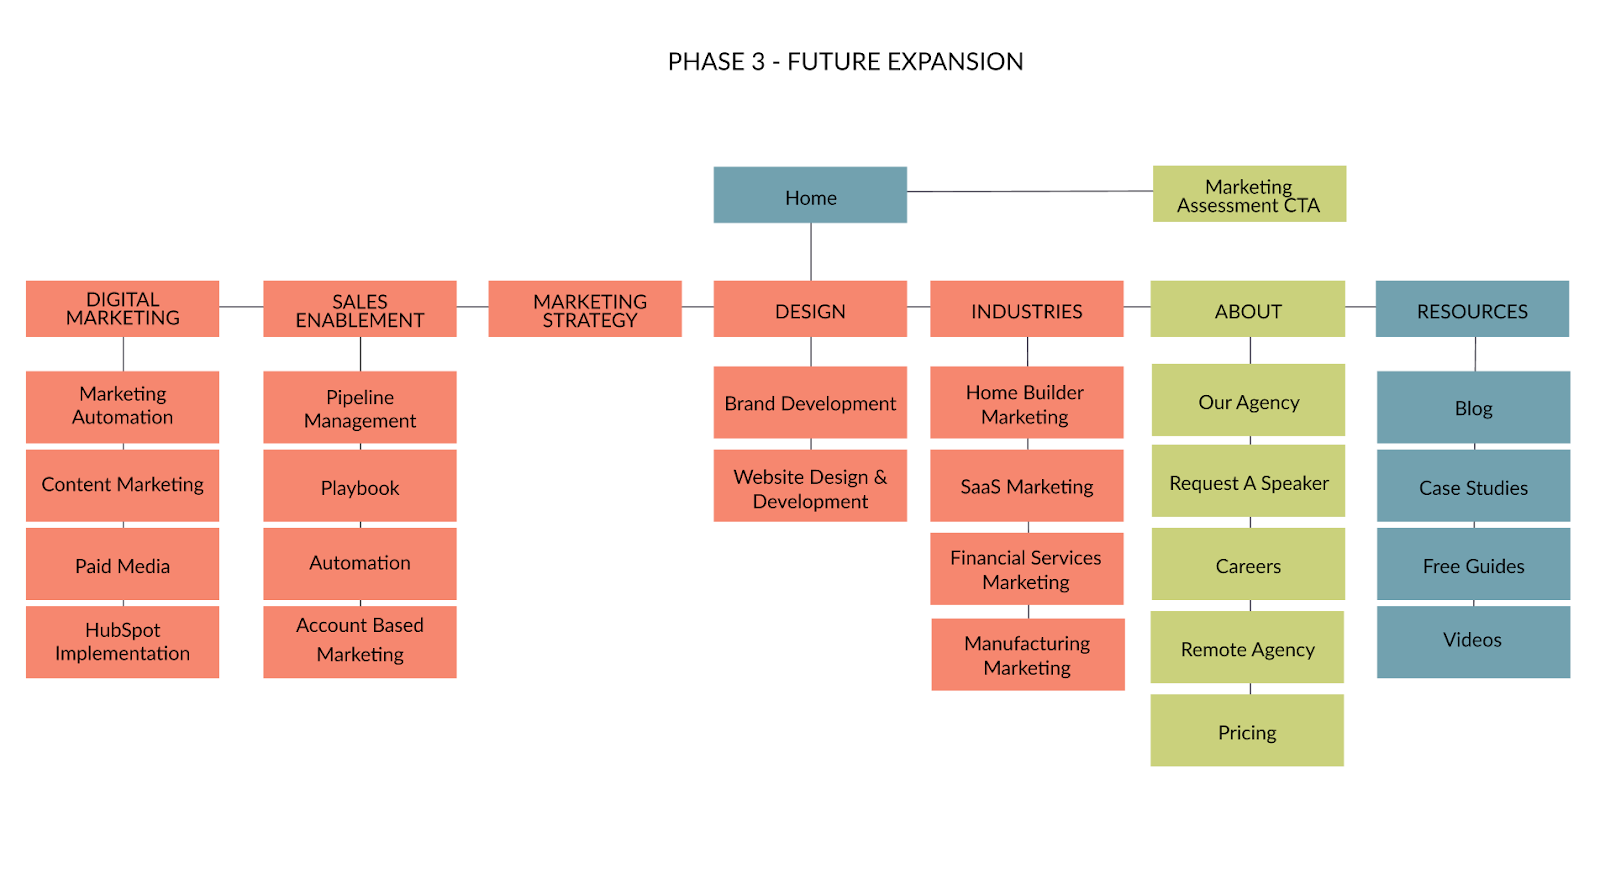 LAIRE GDD Sitemap Phase 3